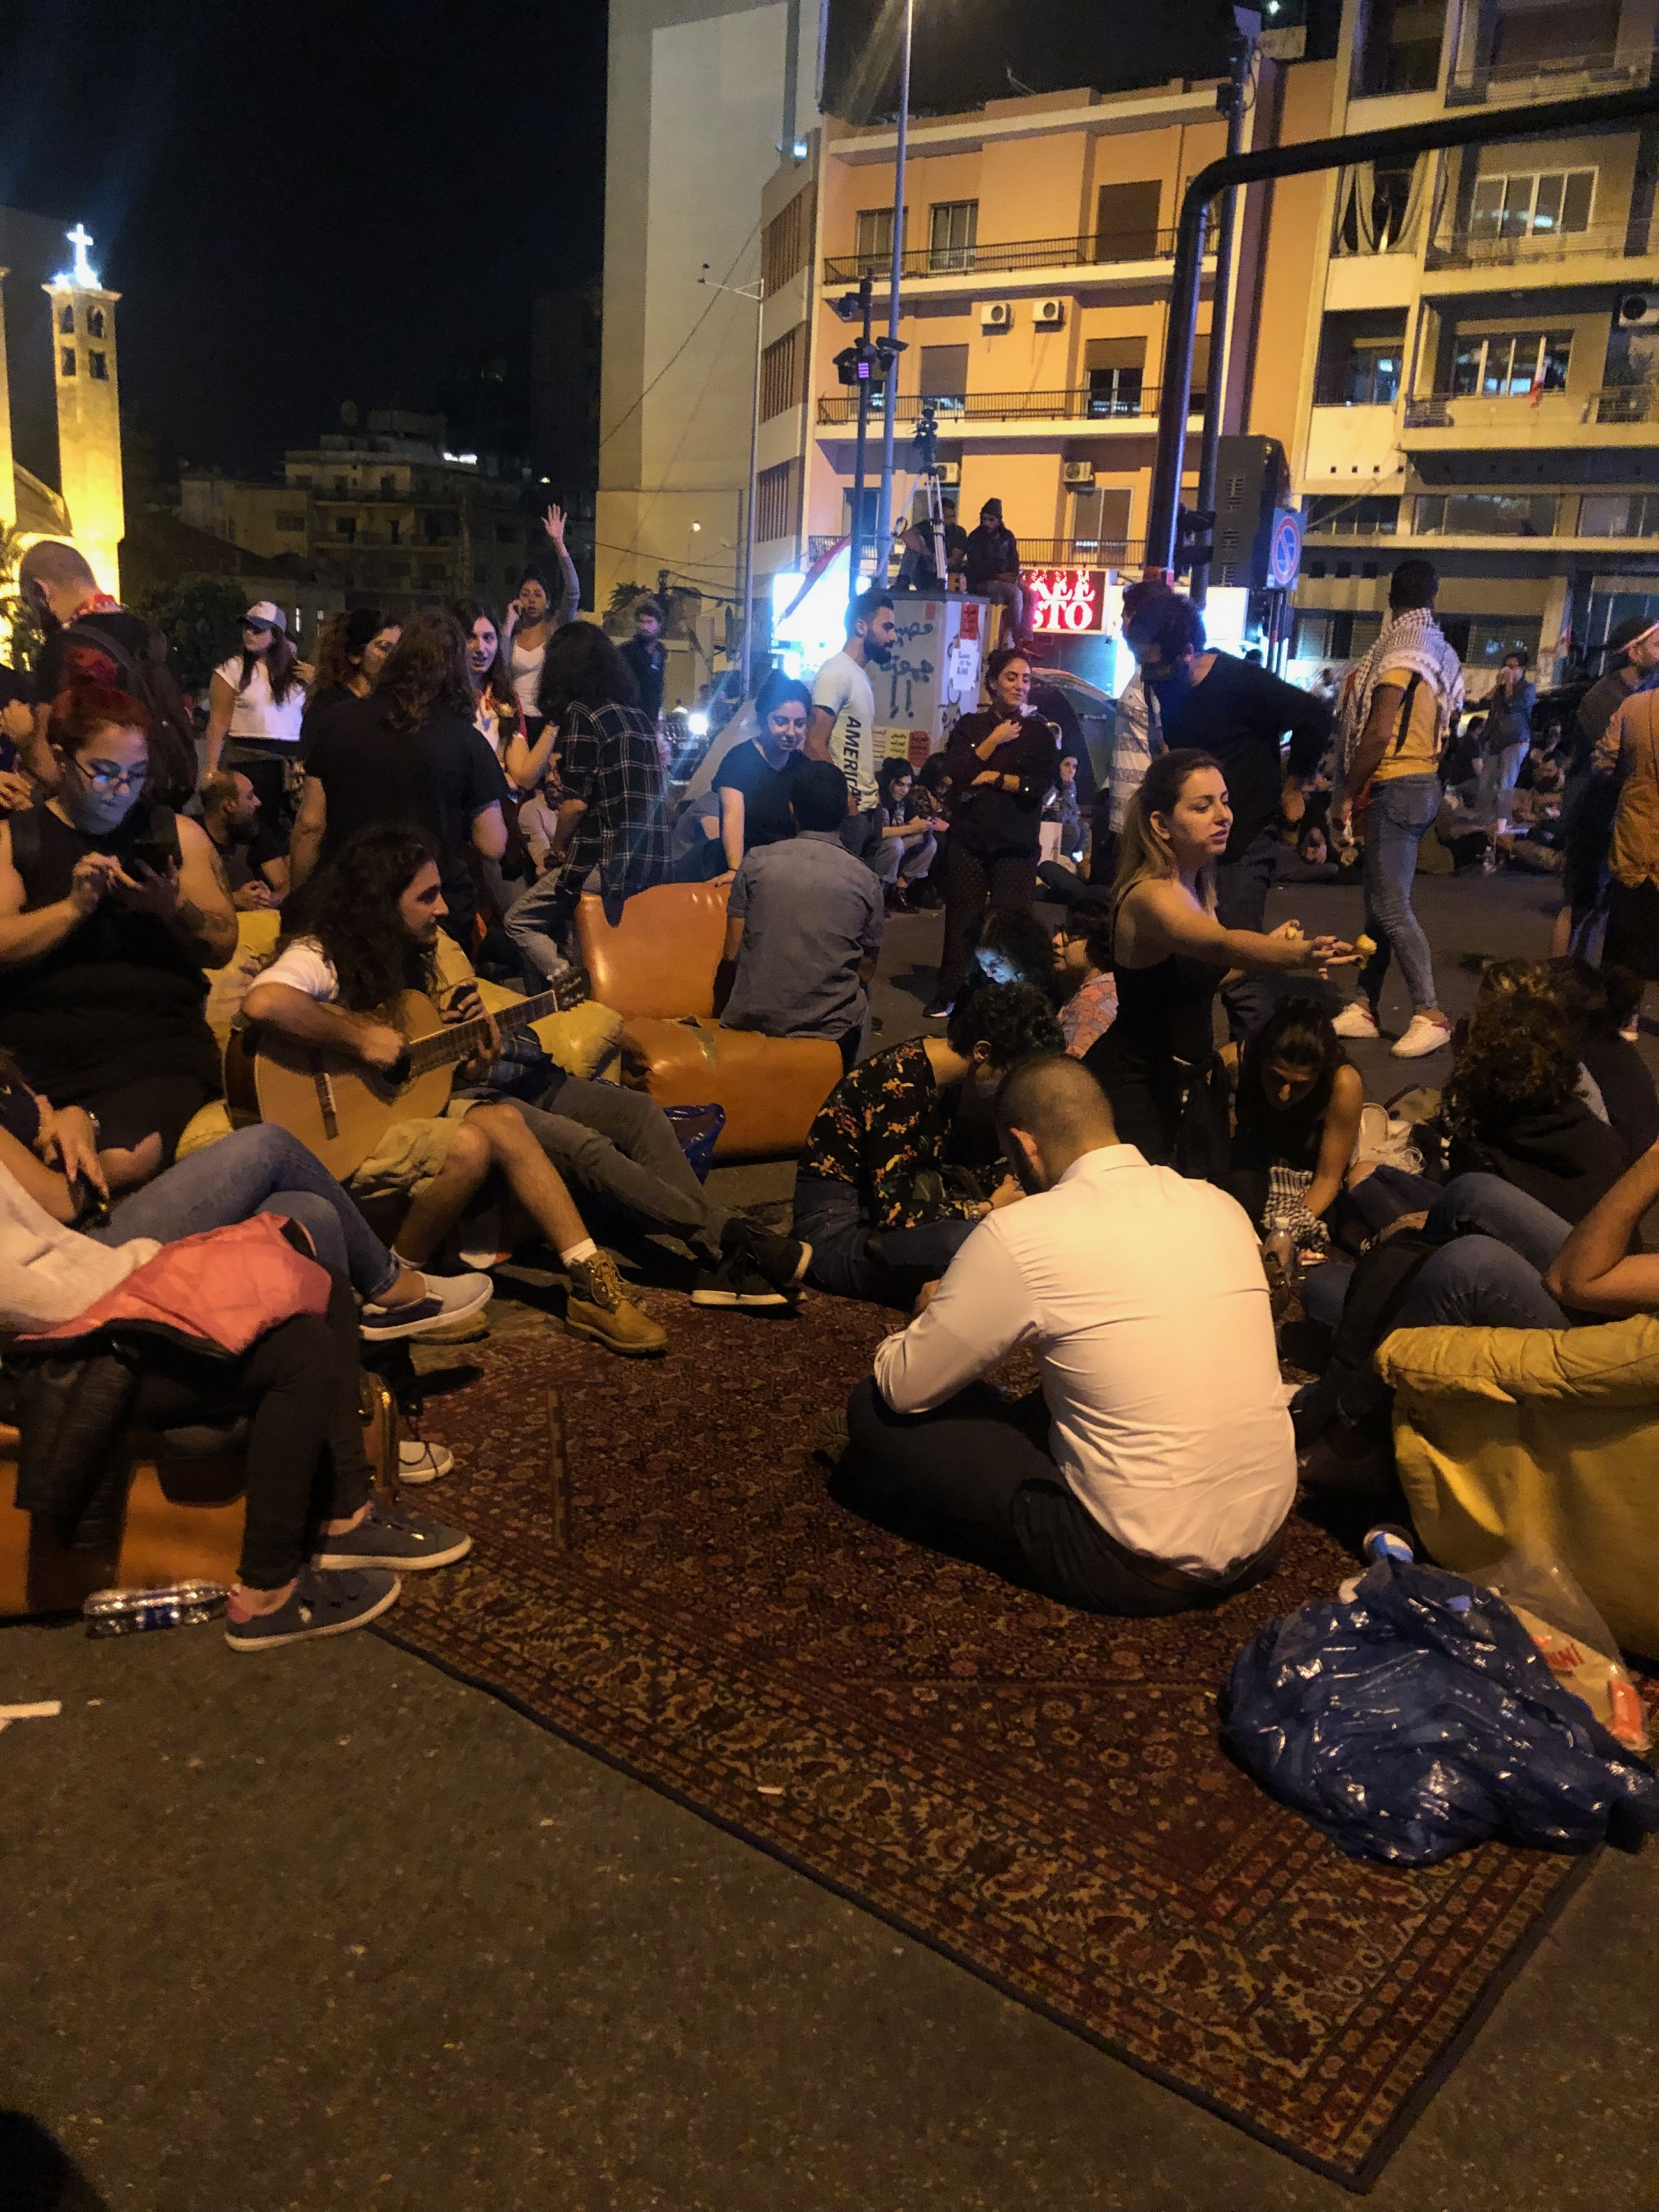 Protesters lay on a carpet as they block Beirut's Ring Bridge.